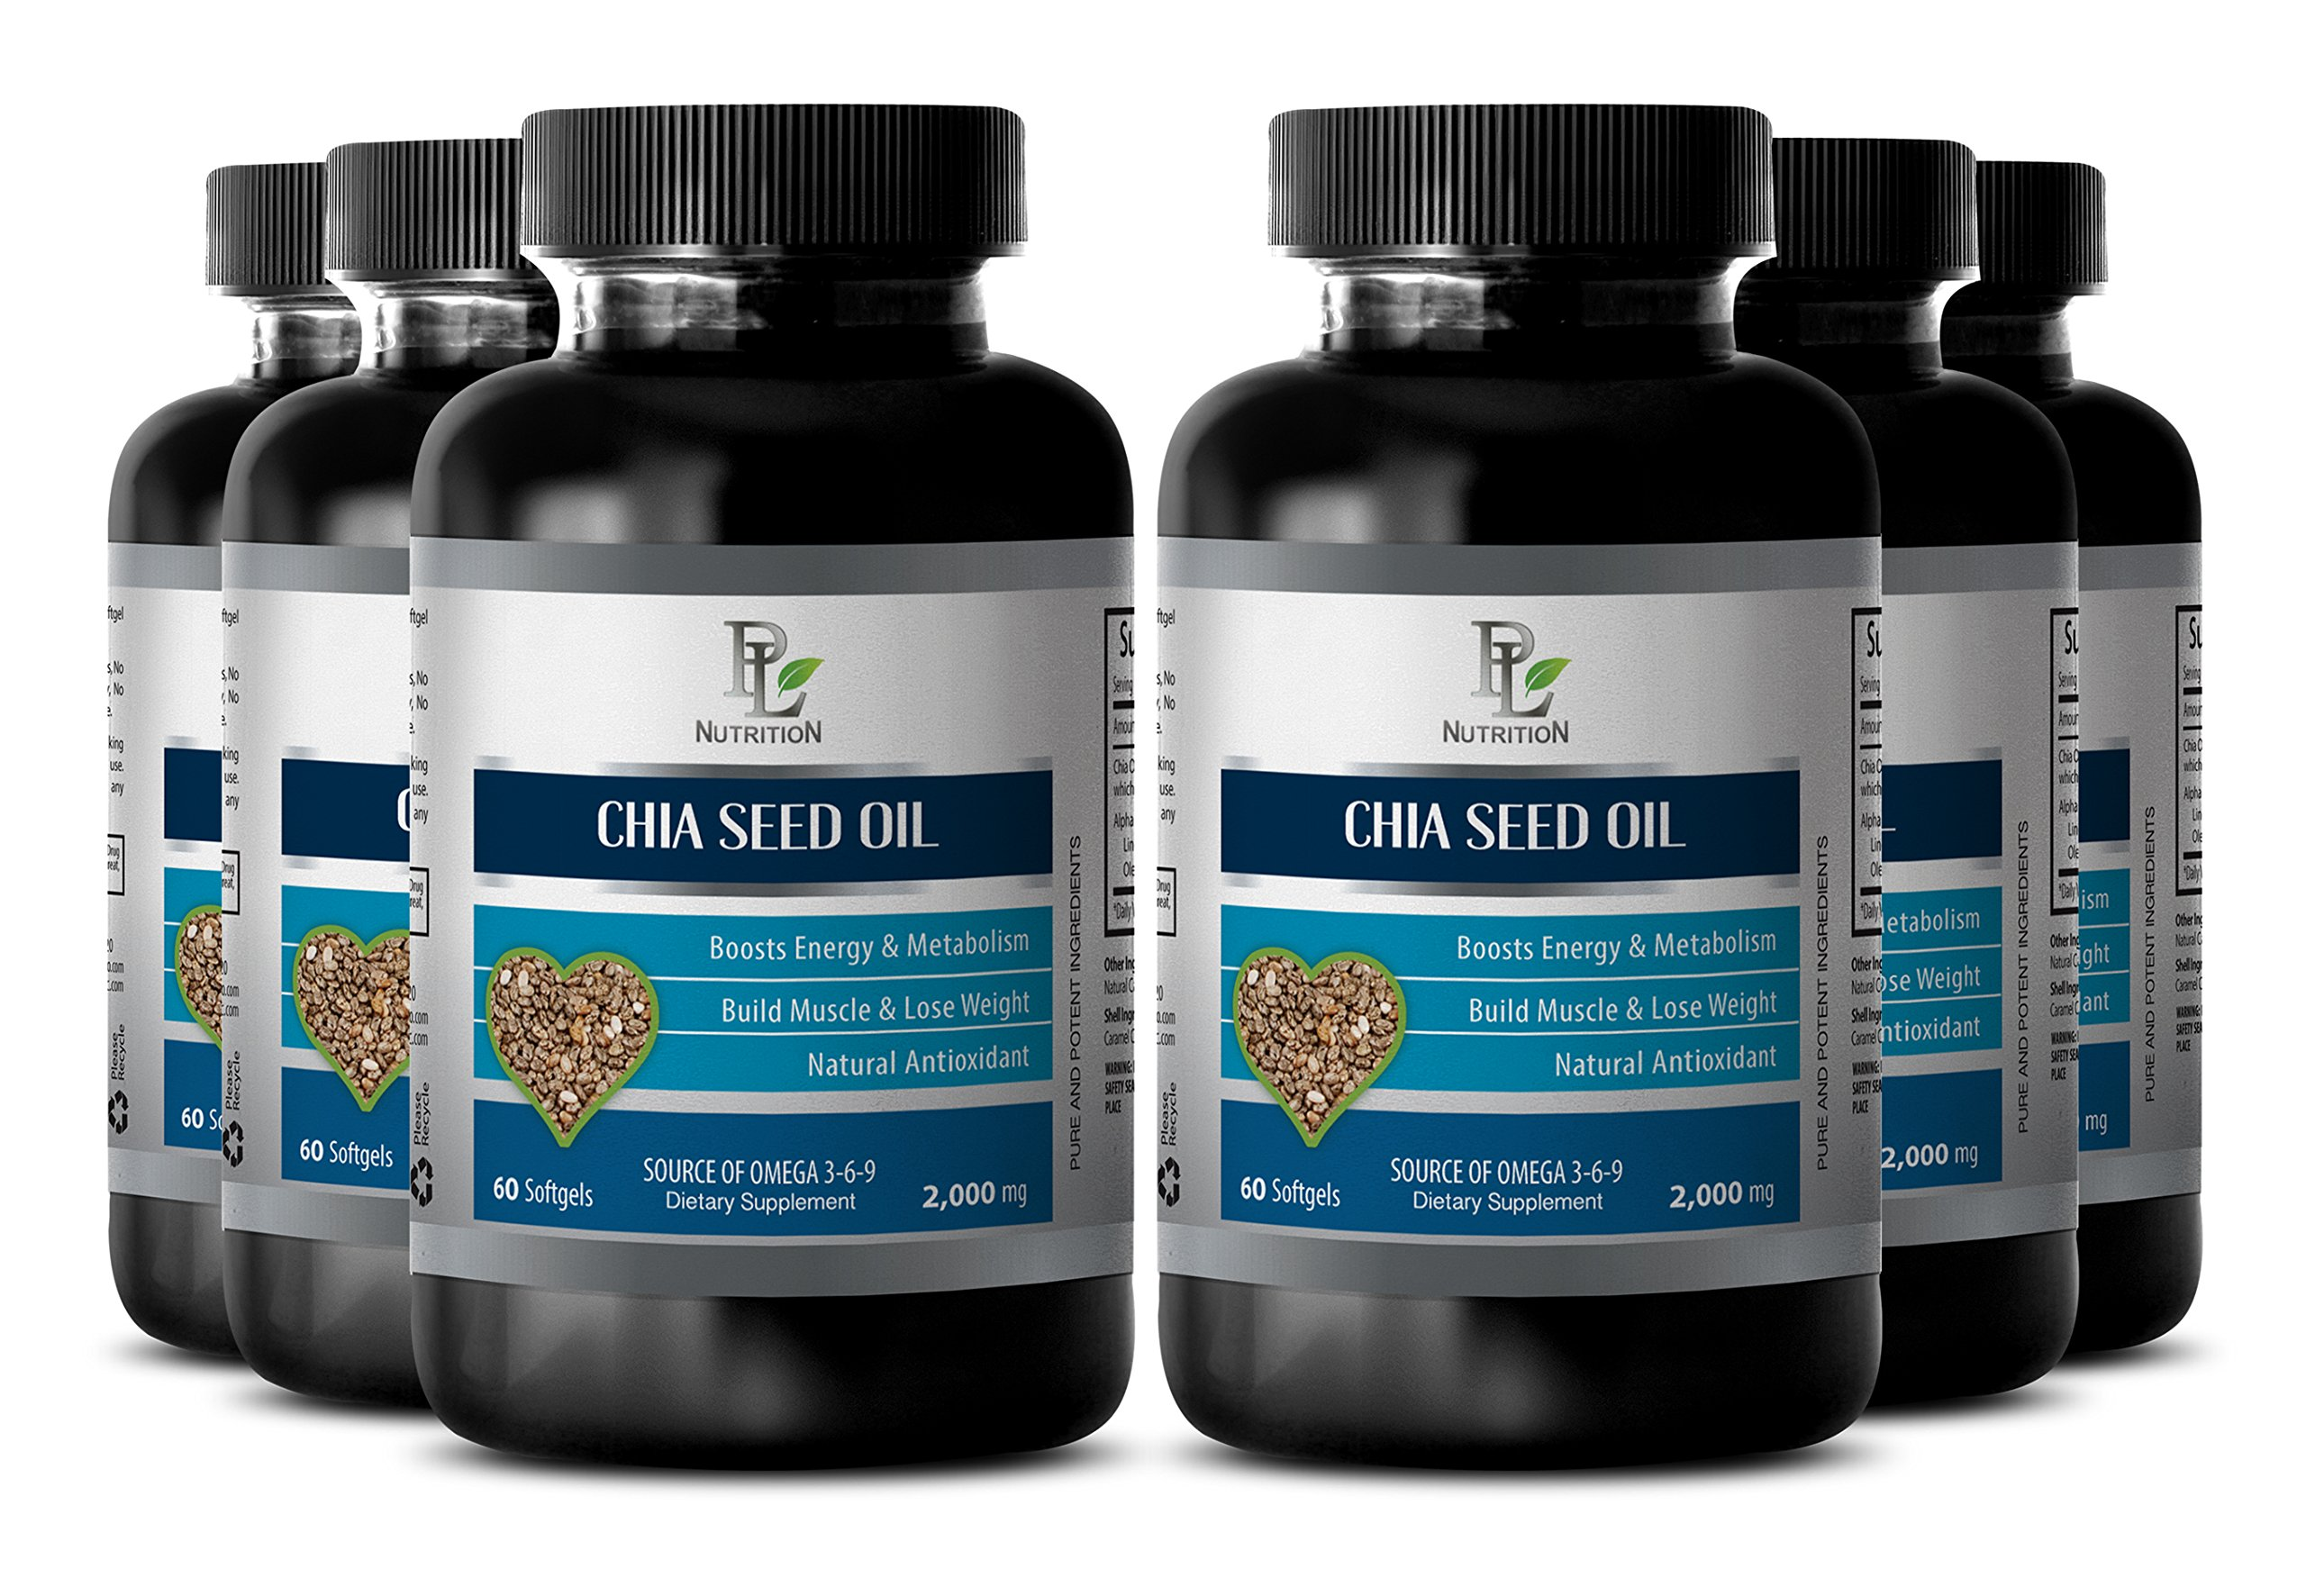 Memory support pills - CHIA SEED OIL - Energy support supplement - 6 Bottle 360 Softgels